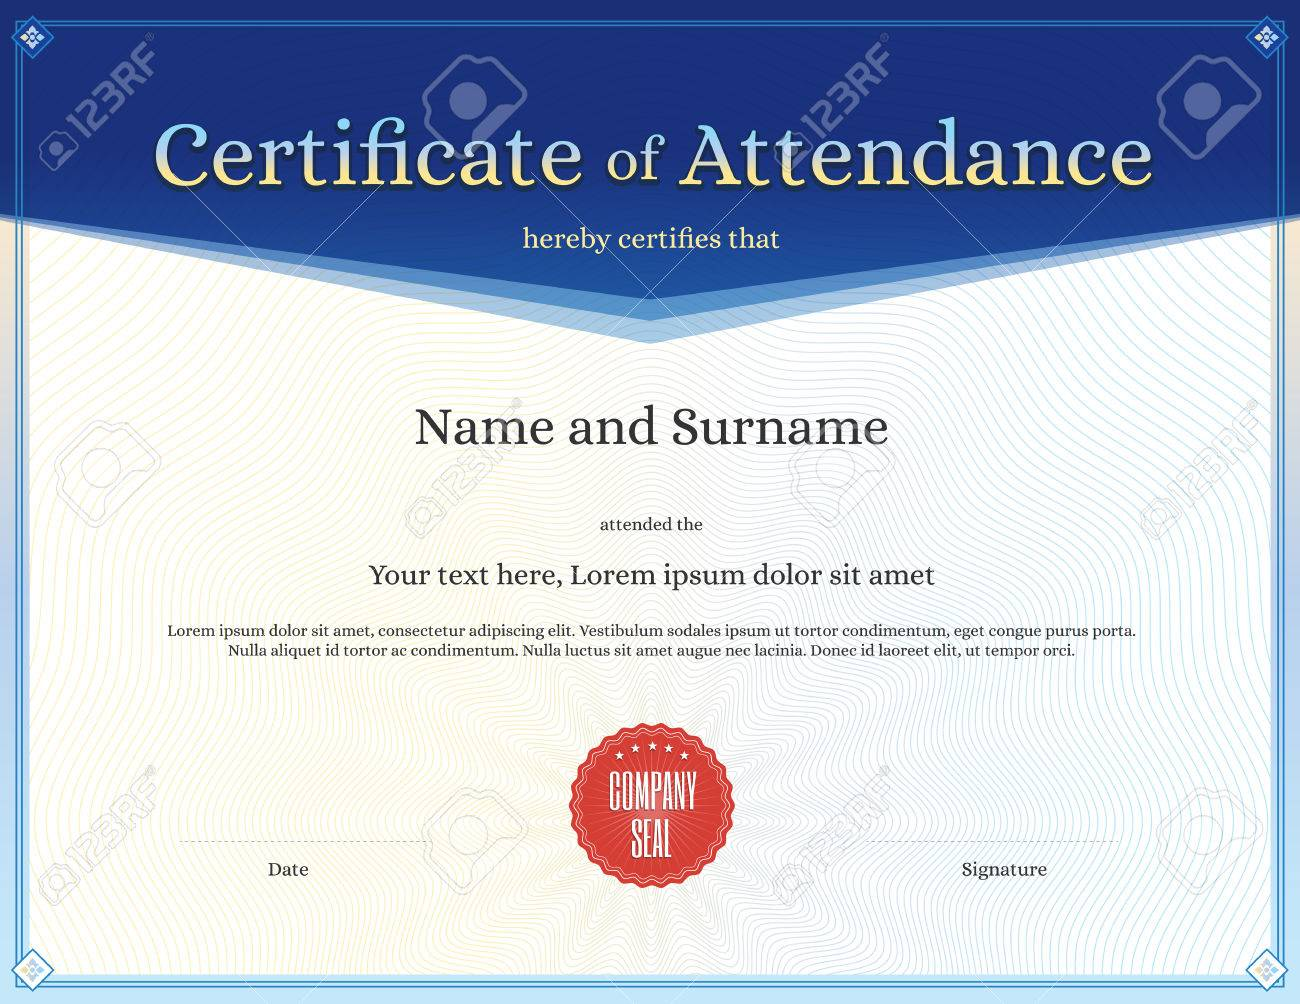 Certificate Of Attendance Template For Achievement Graduation ...